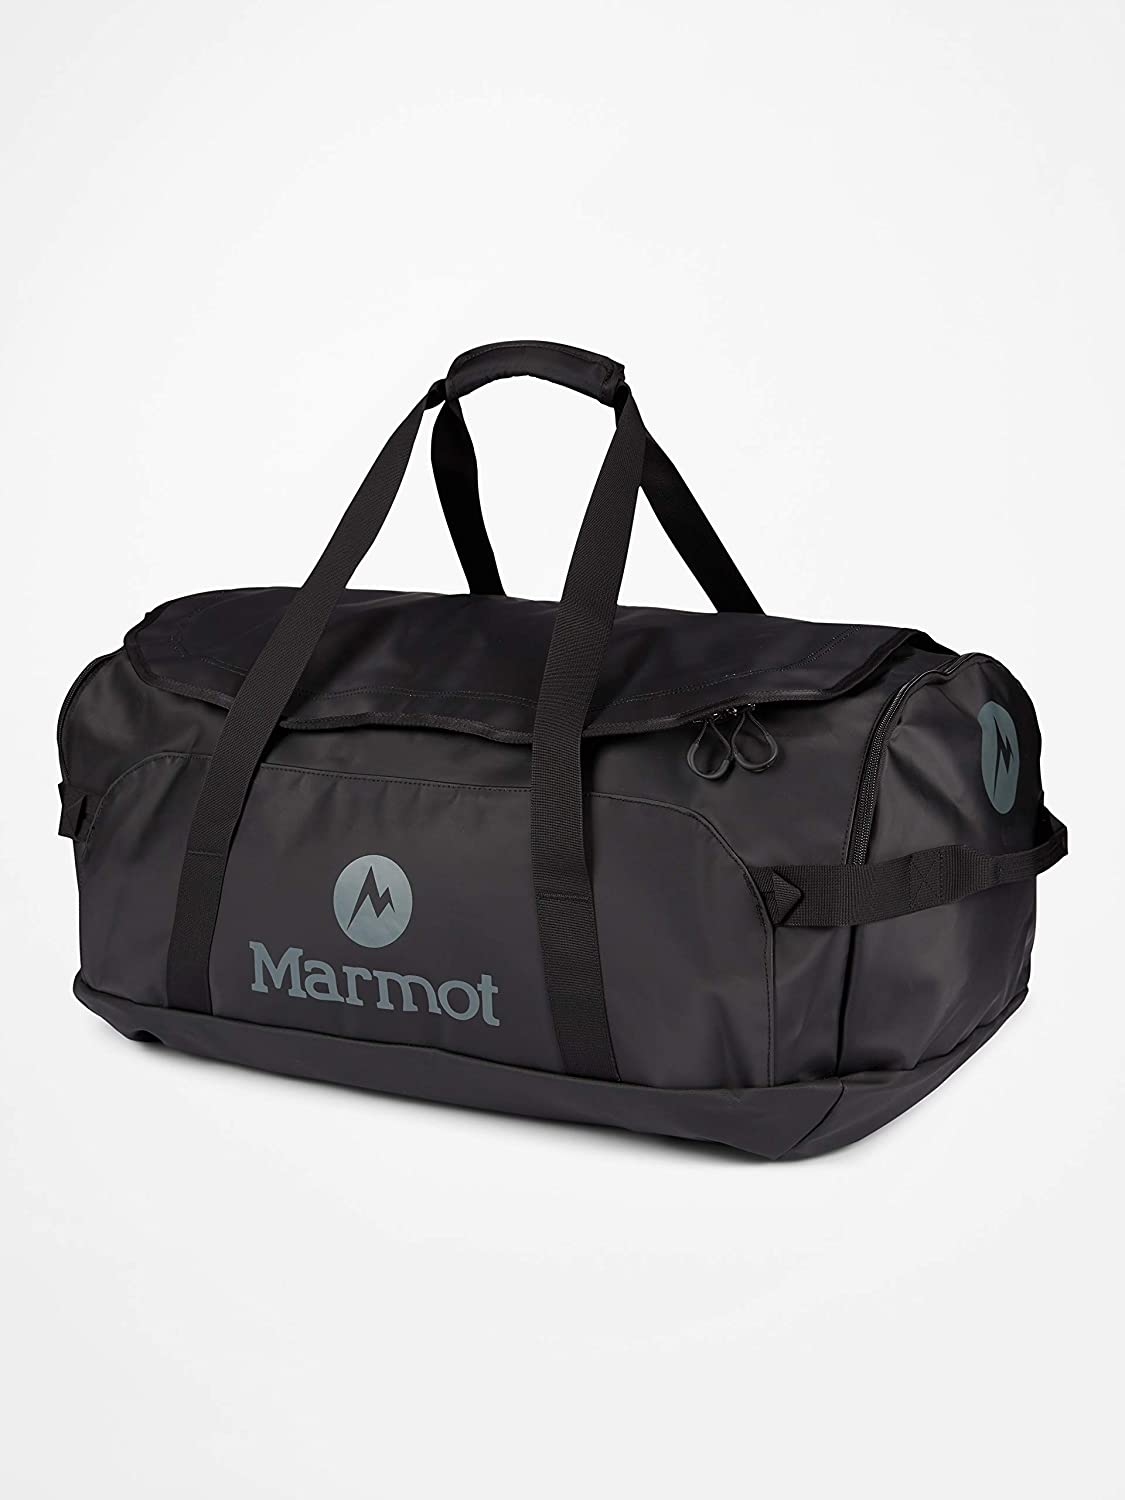 Marmot Long Hauler Travel Duffel Bag, Large, Black